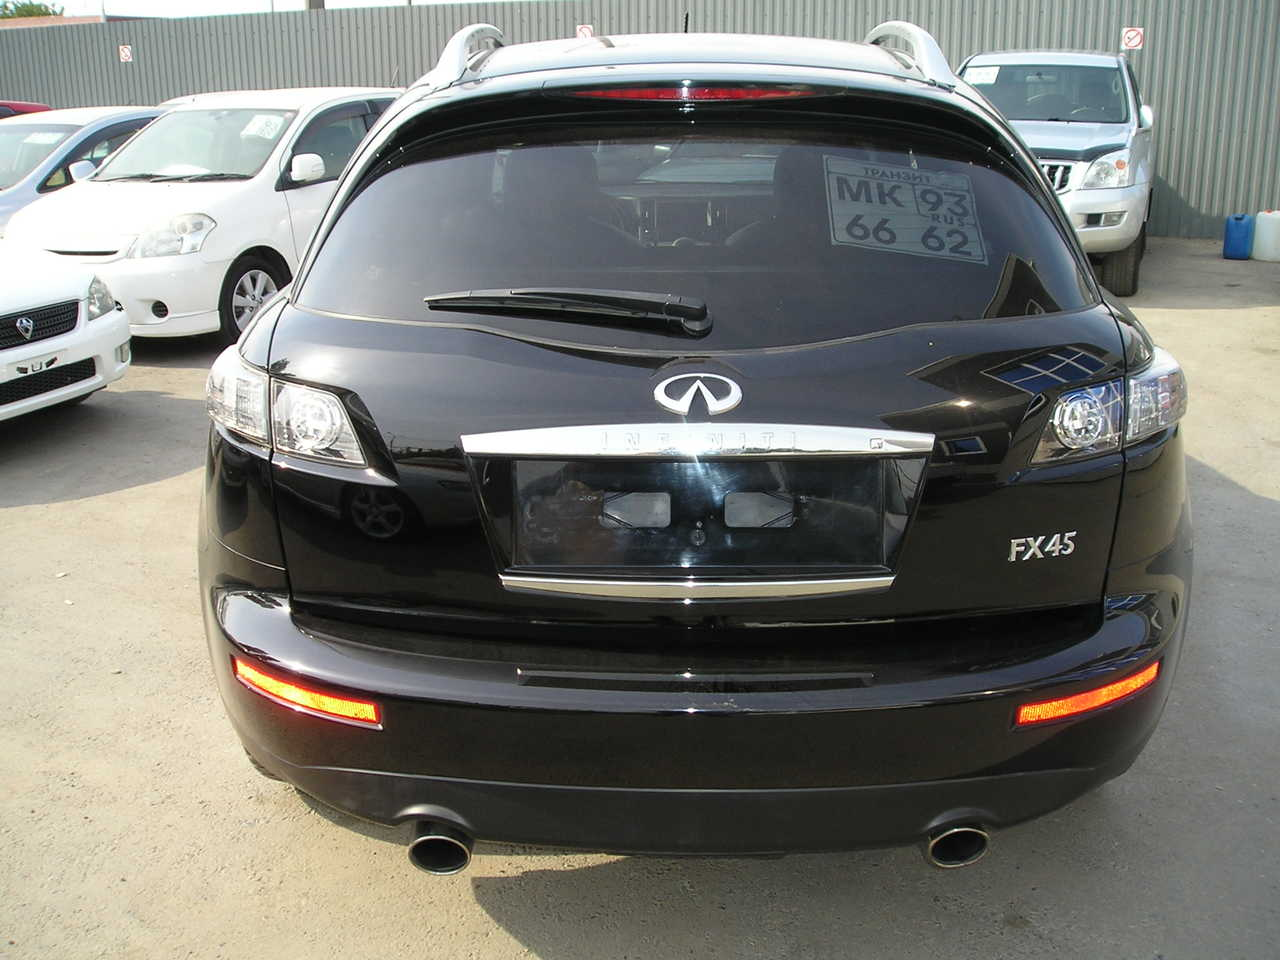 2007 infiniti fx45 for sale gasoline automatic for sale. Black Bedroom Furniture Sets. Home Design Ideas